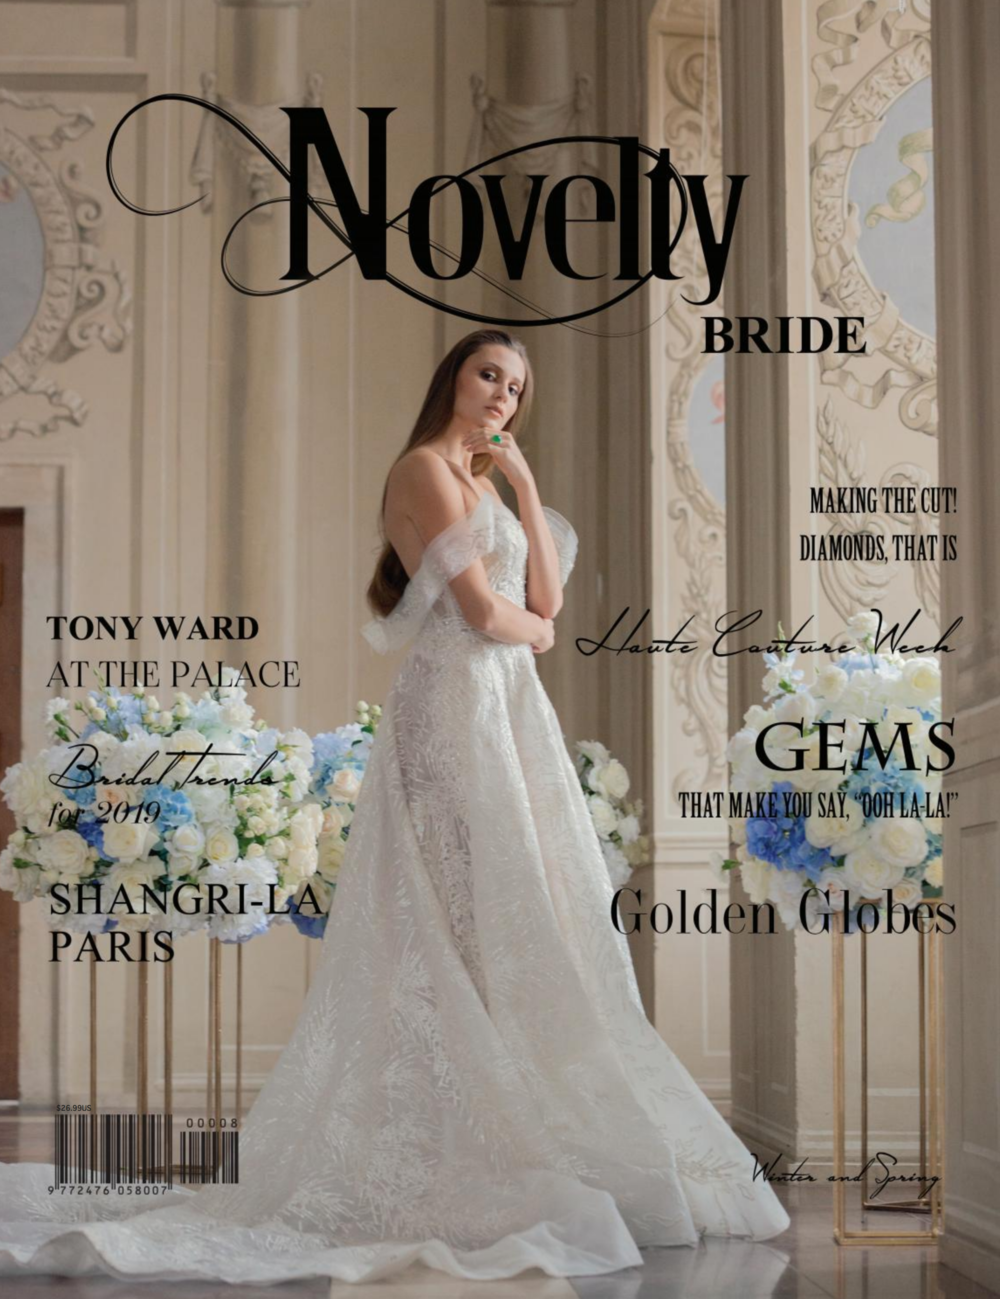 chris-j-evans-novelty-bride-feature.png